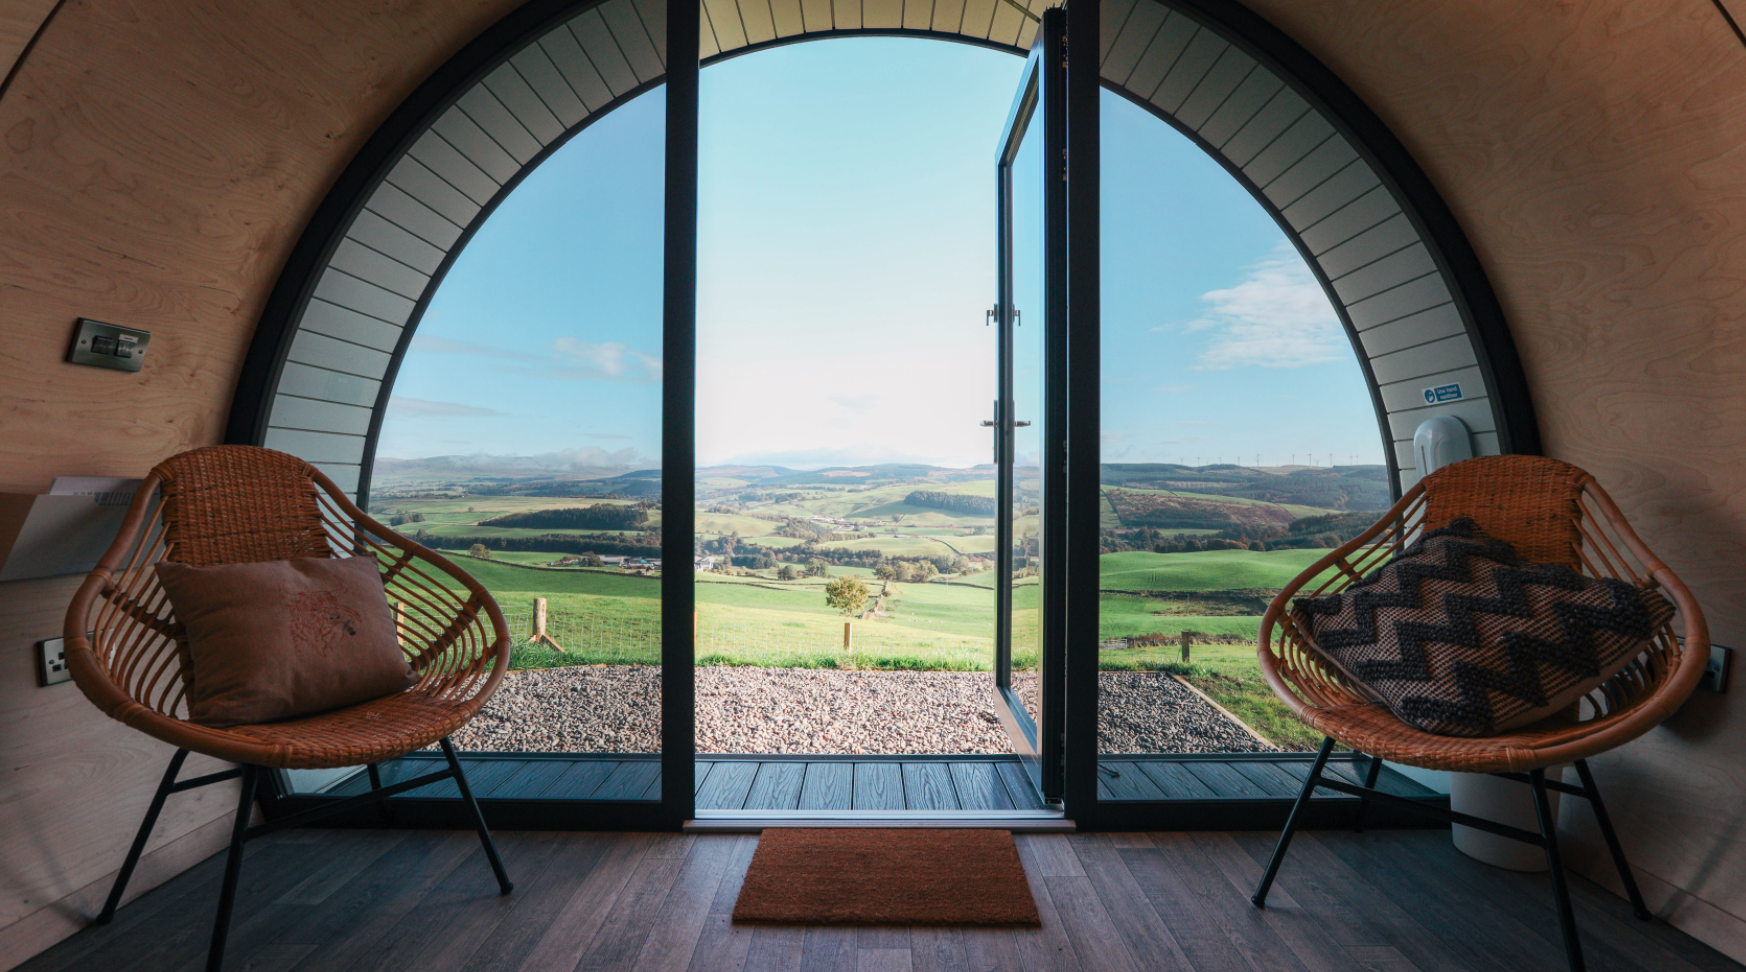 Dumfries and Galloway glamping pods view